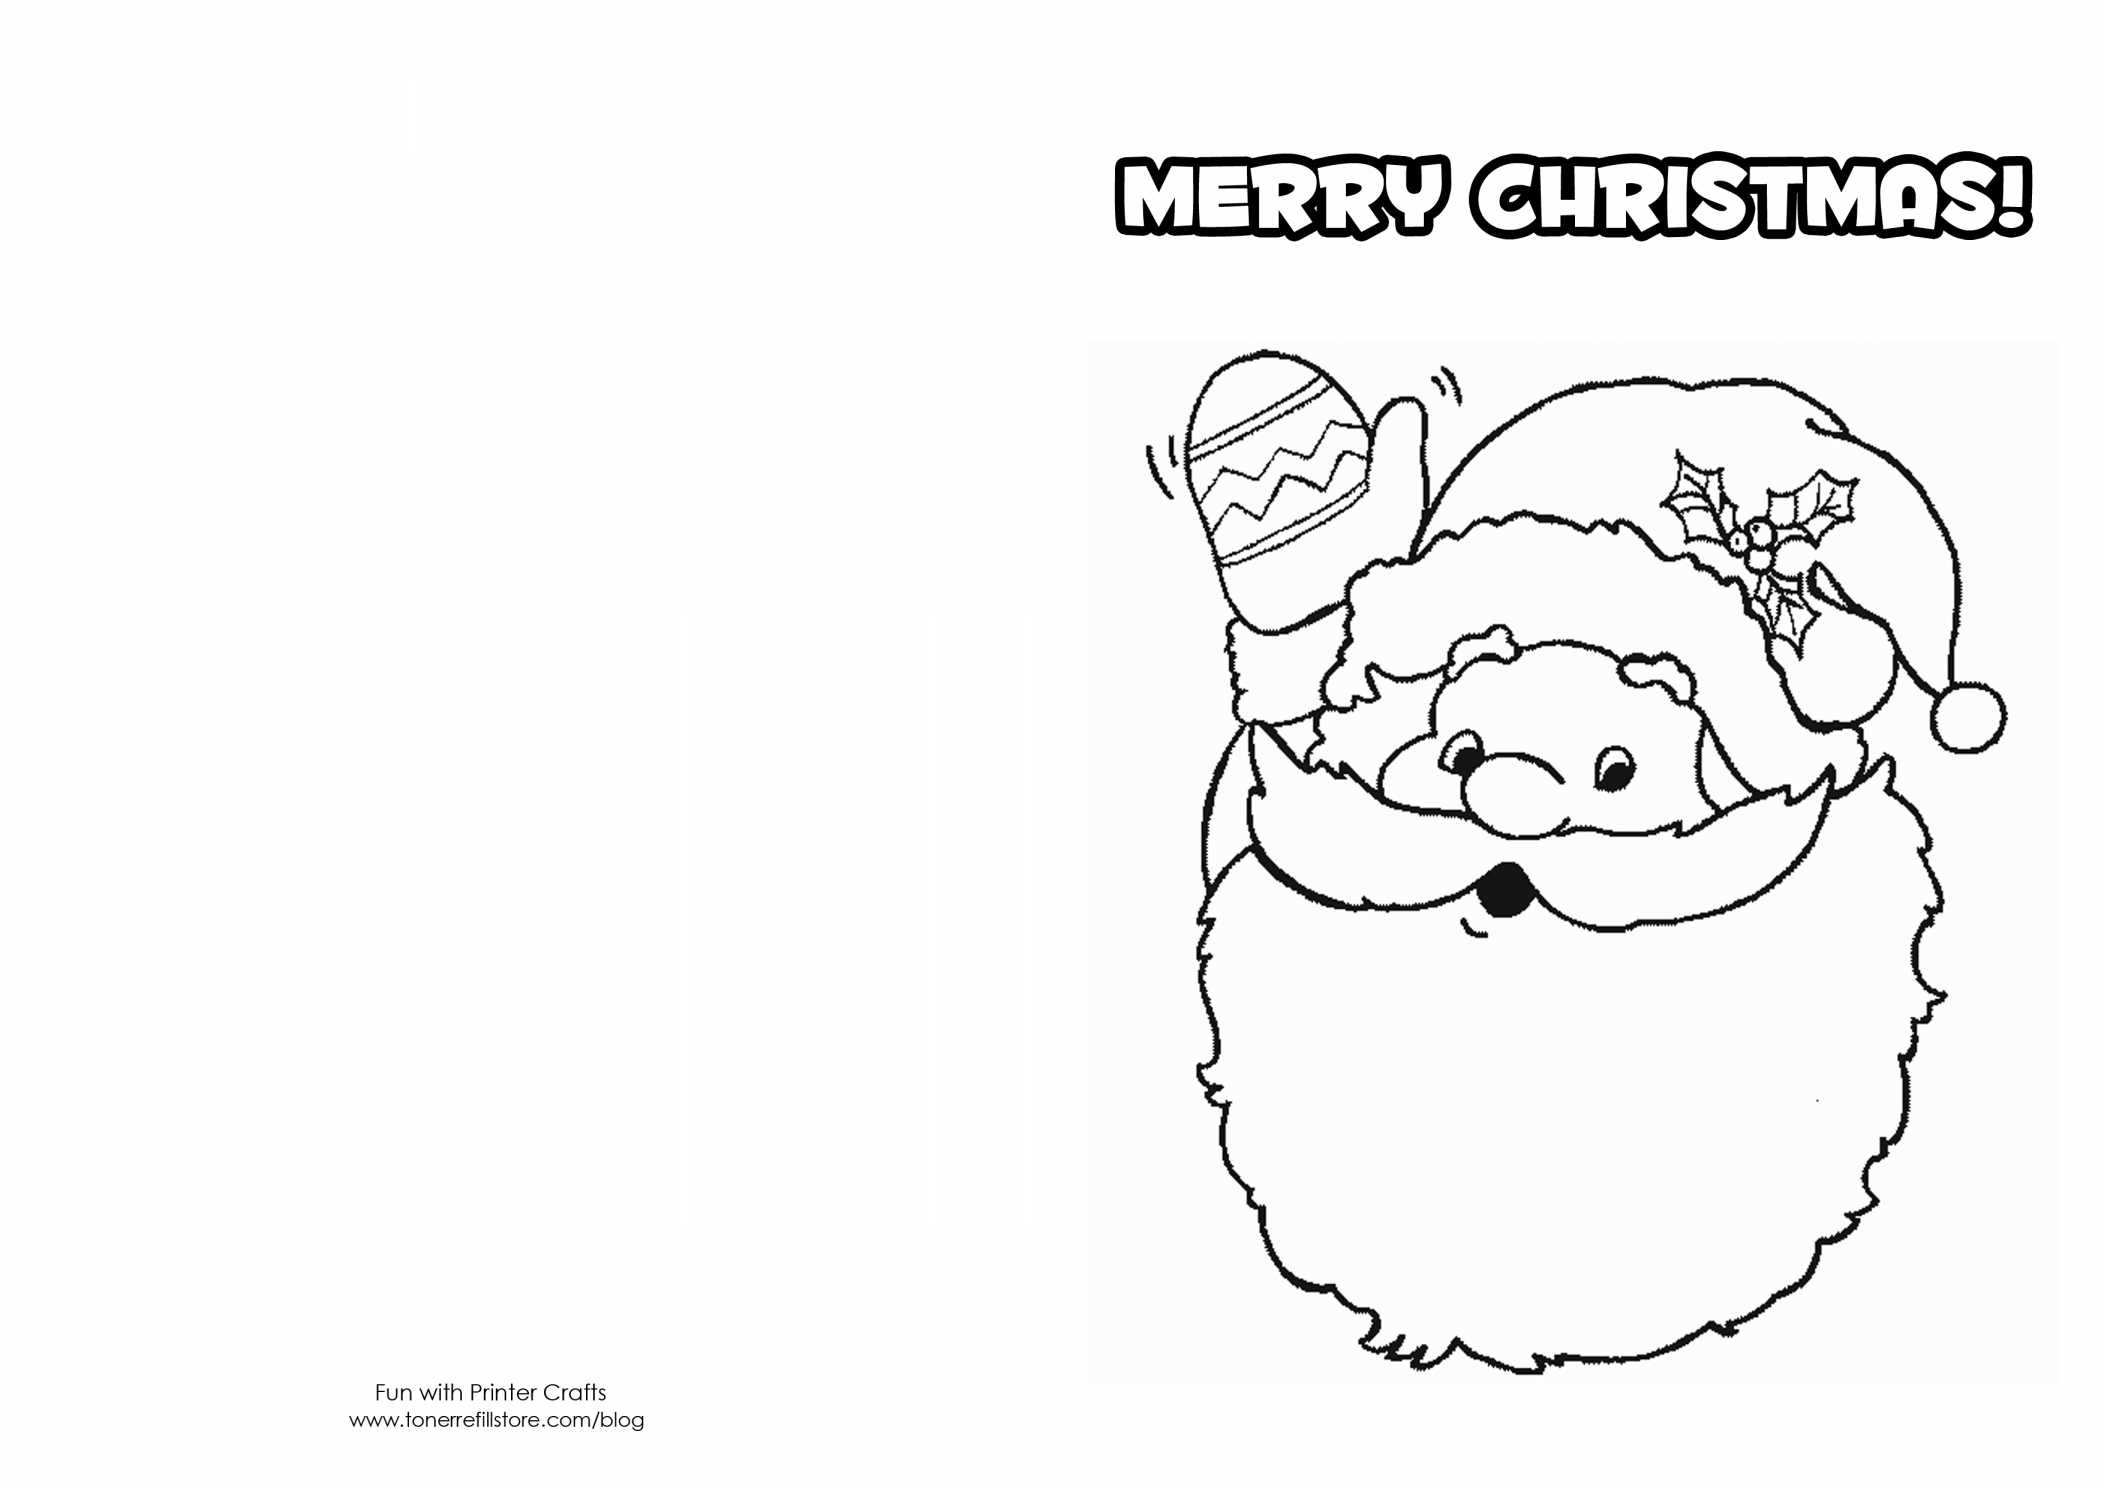 Christmas Cards Coloring Pages With Free Printable Save Merry Card